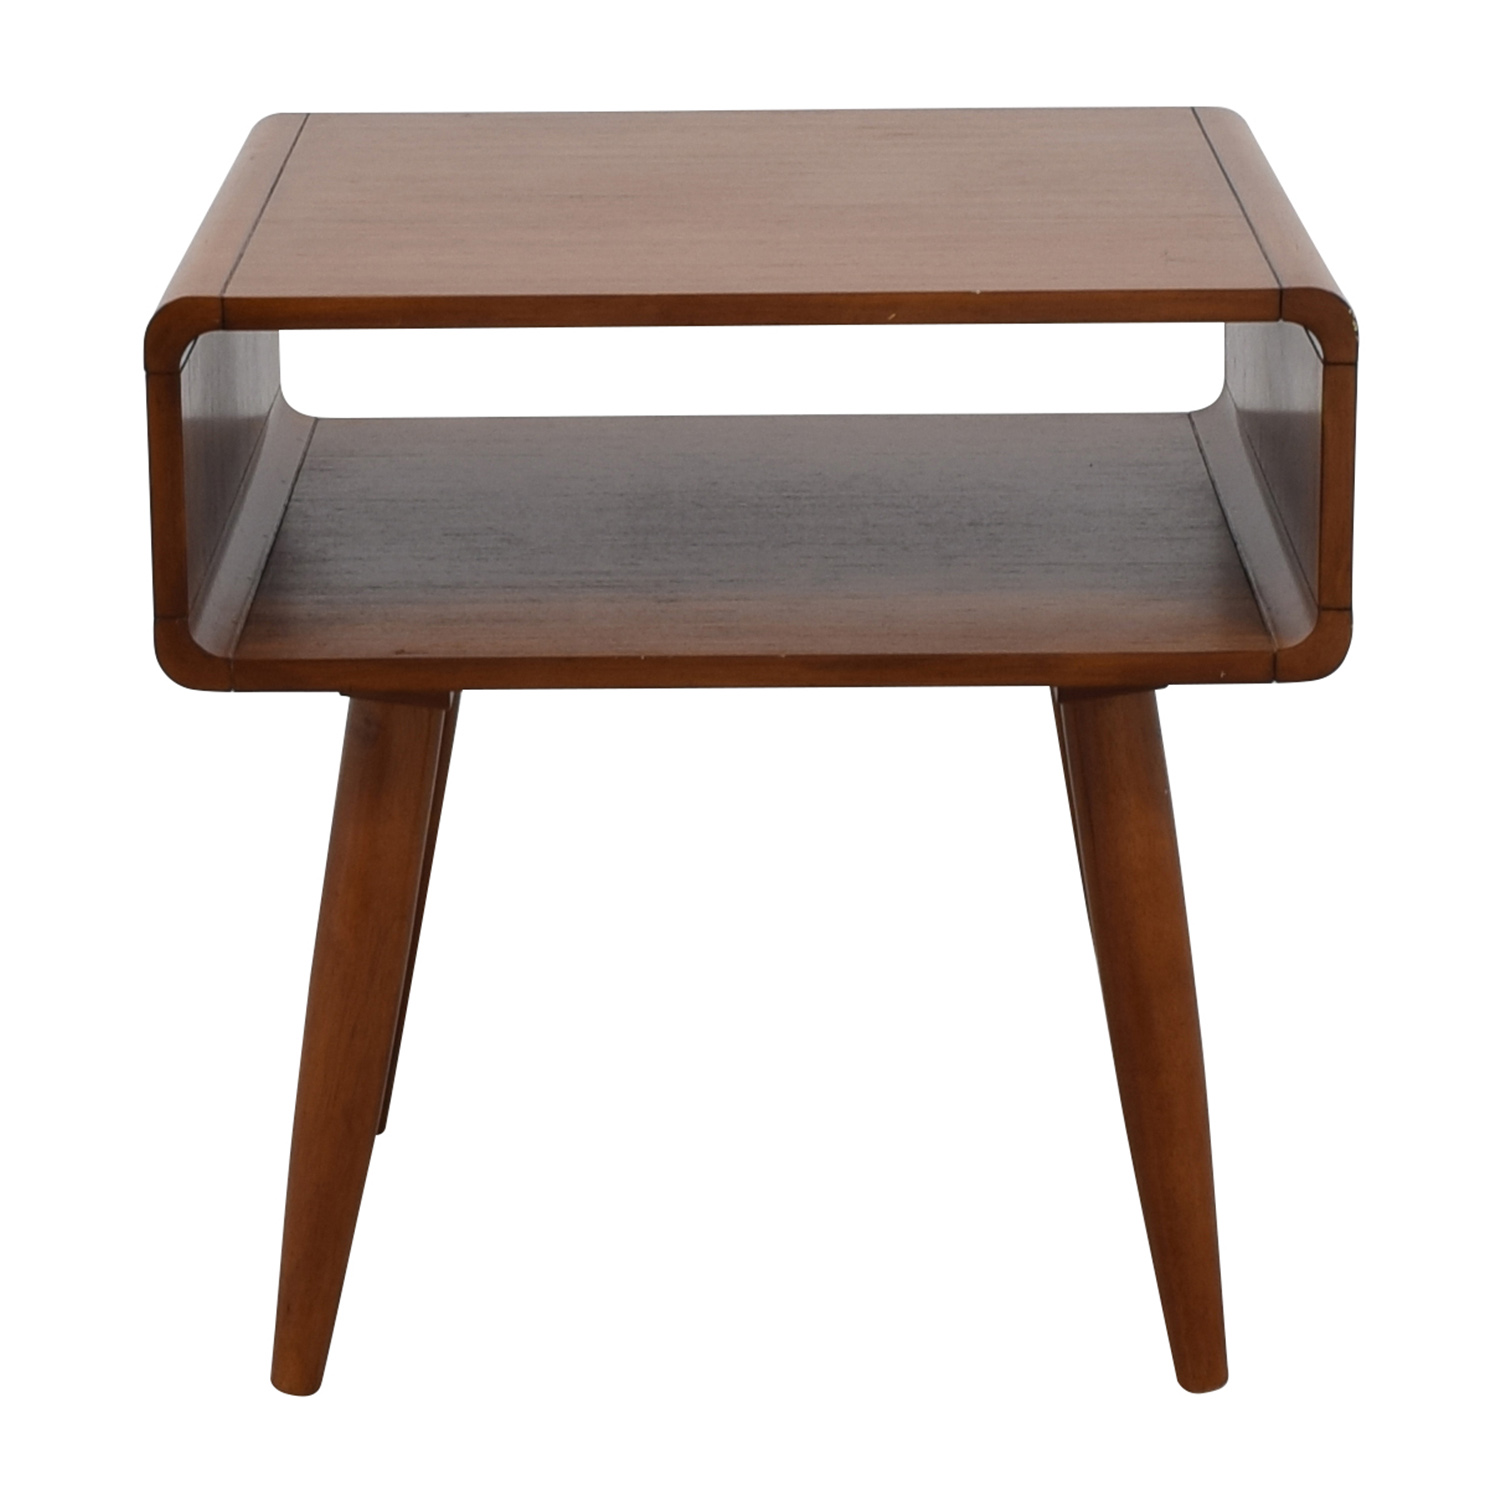 Boraam Boraam Zebra Series Alborg End Table for sale